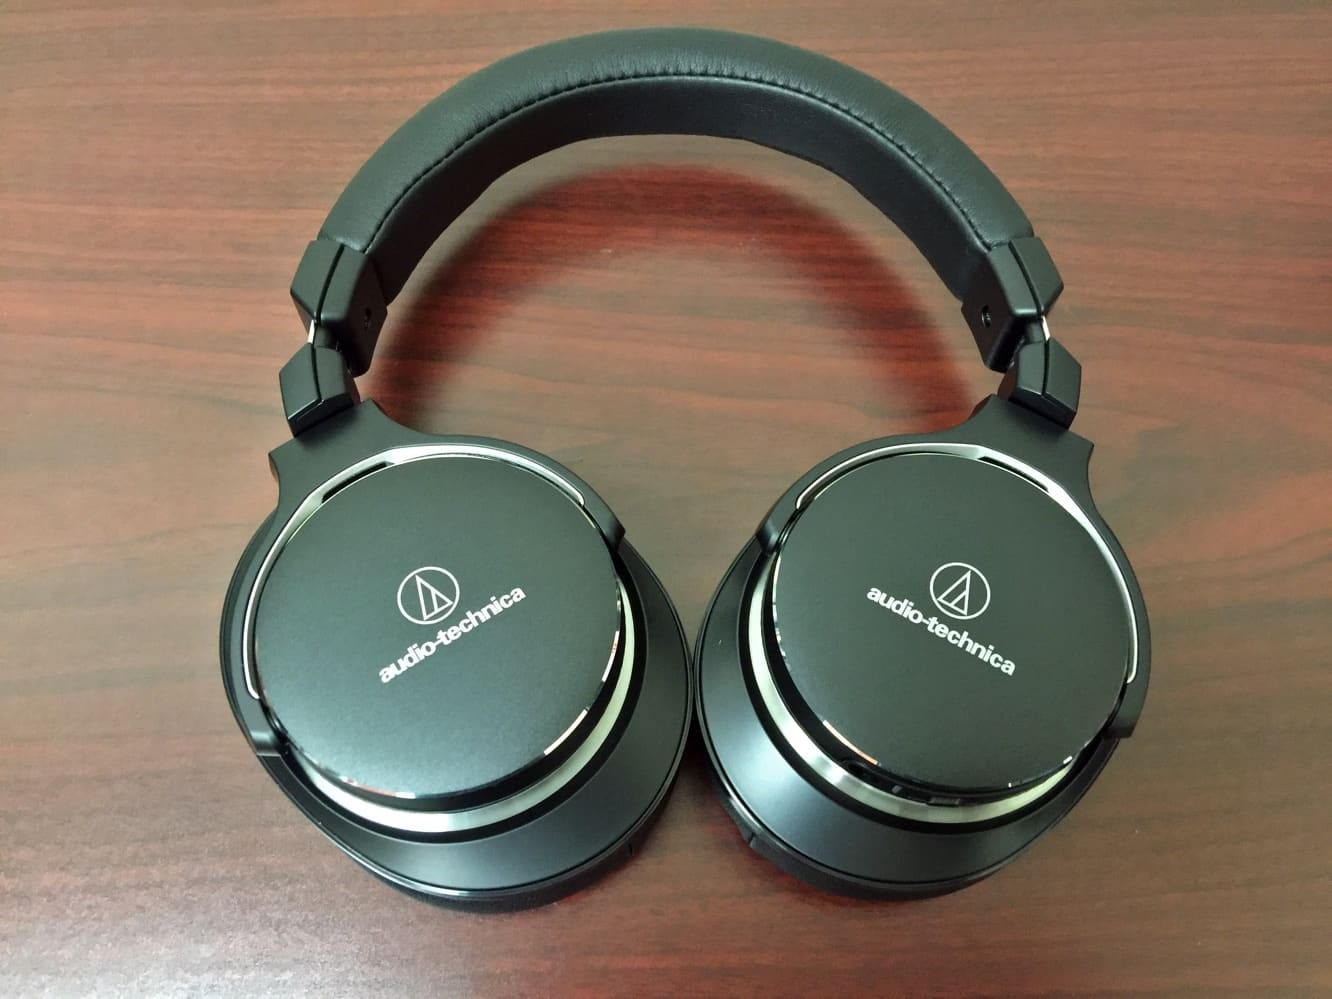 Review: Audio-Technica ATH-MSR7NC SonicPro Headphones with Active Noise Cancellation